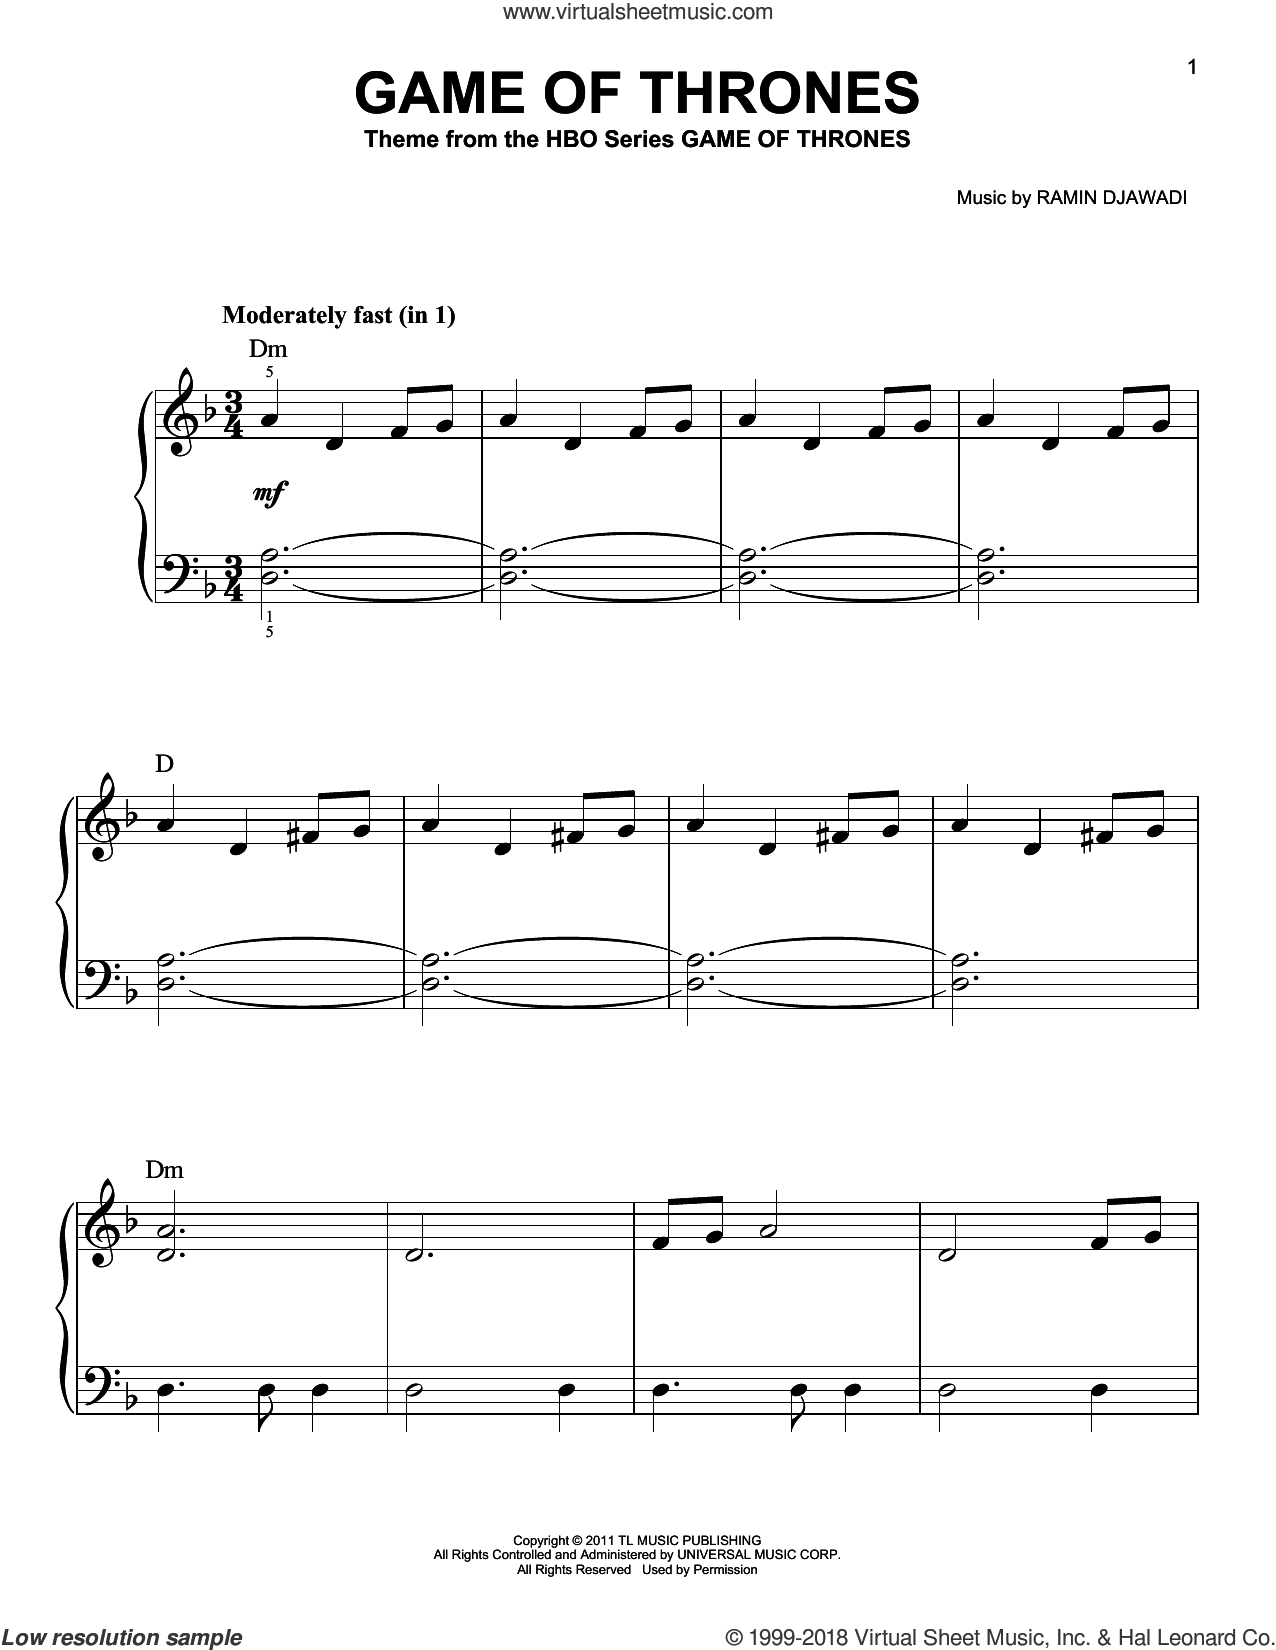 Game Of Thrones - Main Title, (easy) sheet music for piano solo by Ramin Djawadi and Game Of Thrones (TV Series), classical score, easy skill level